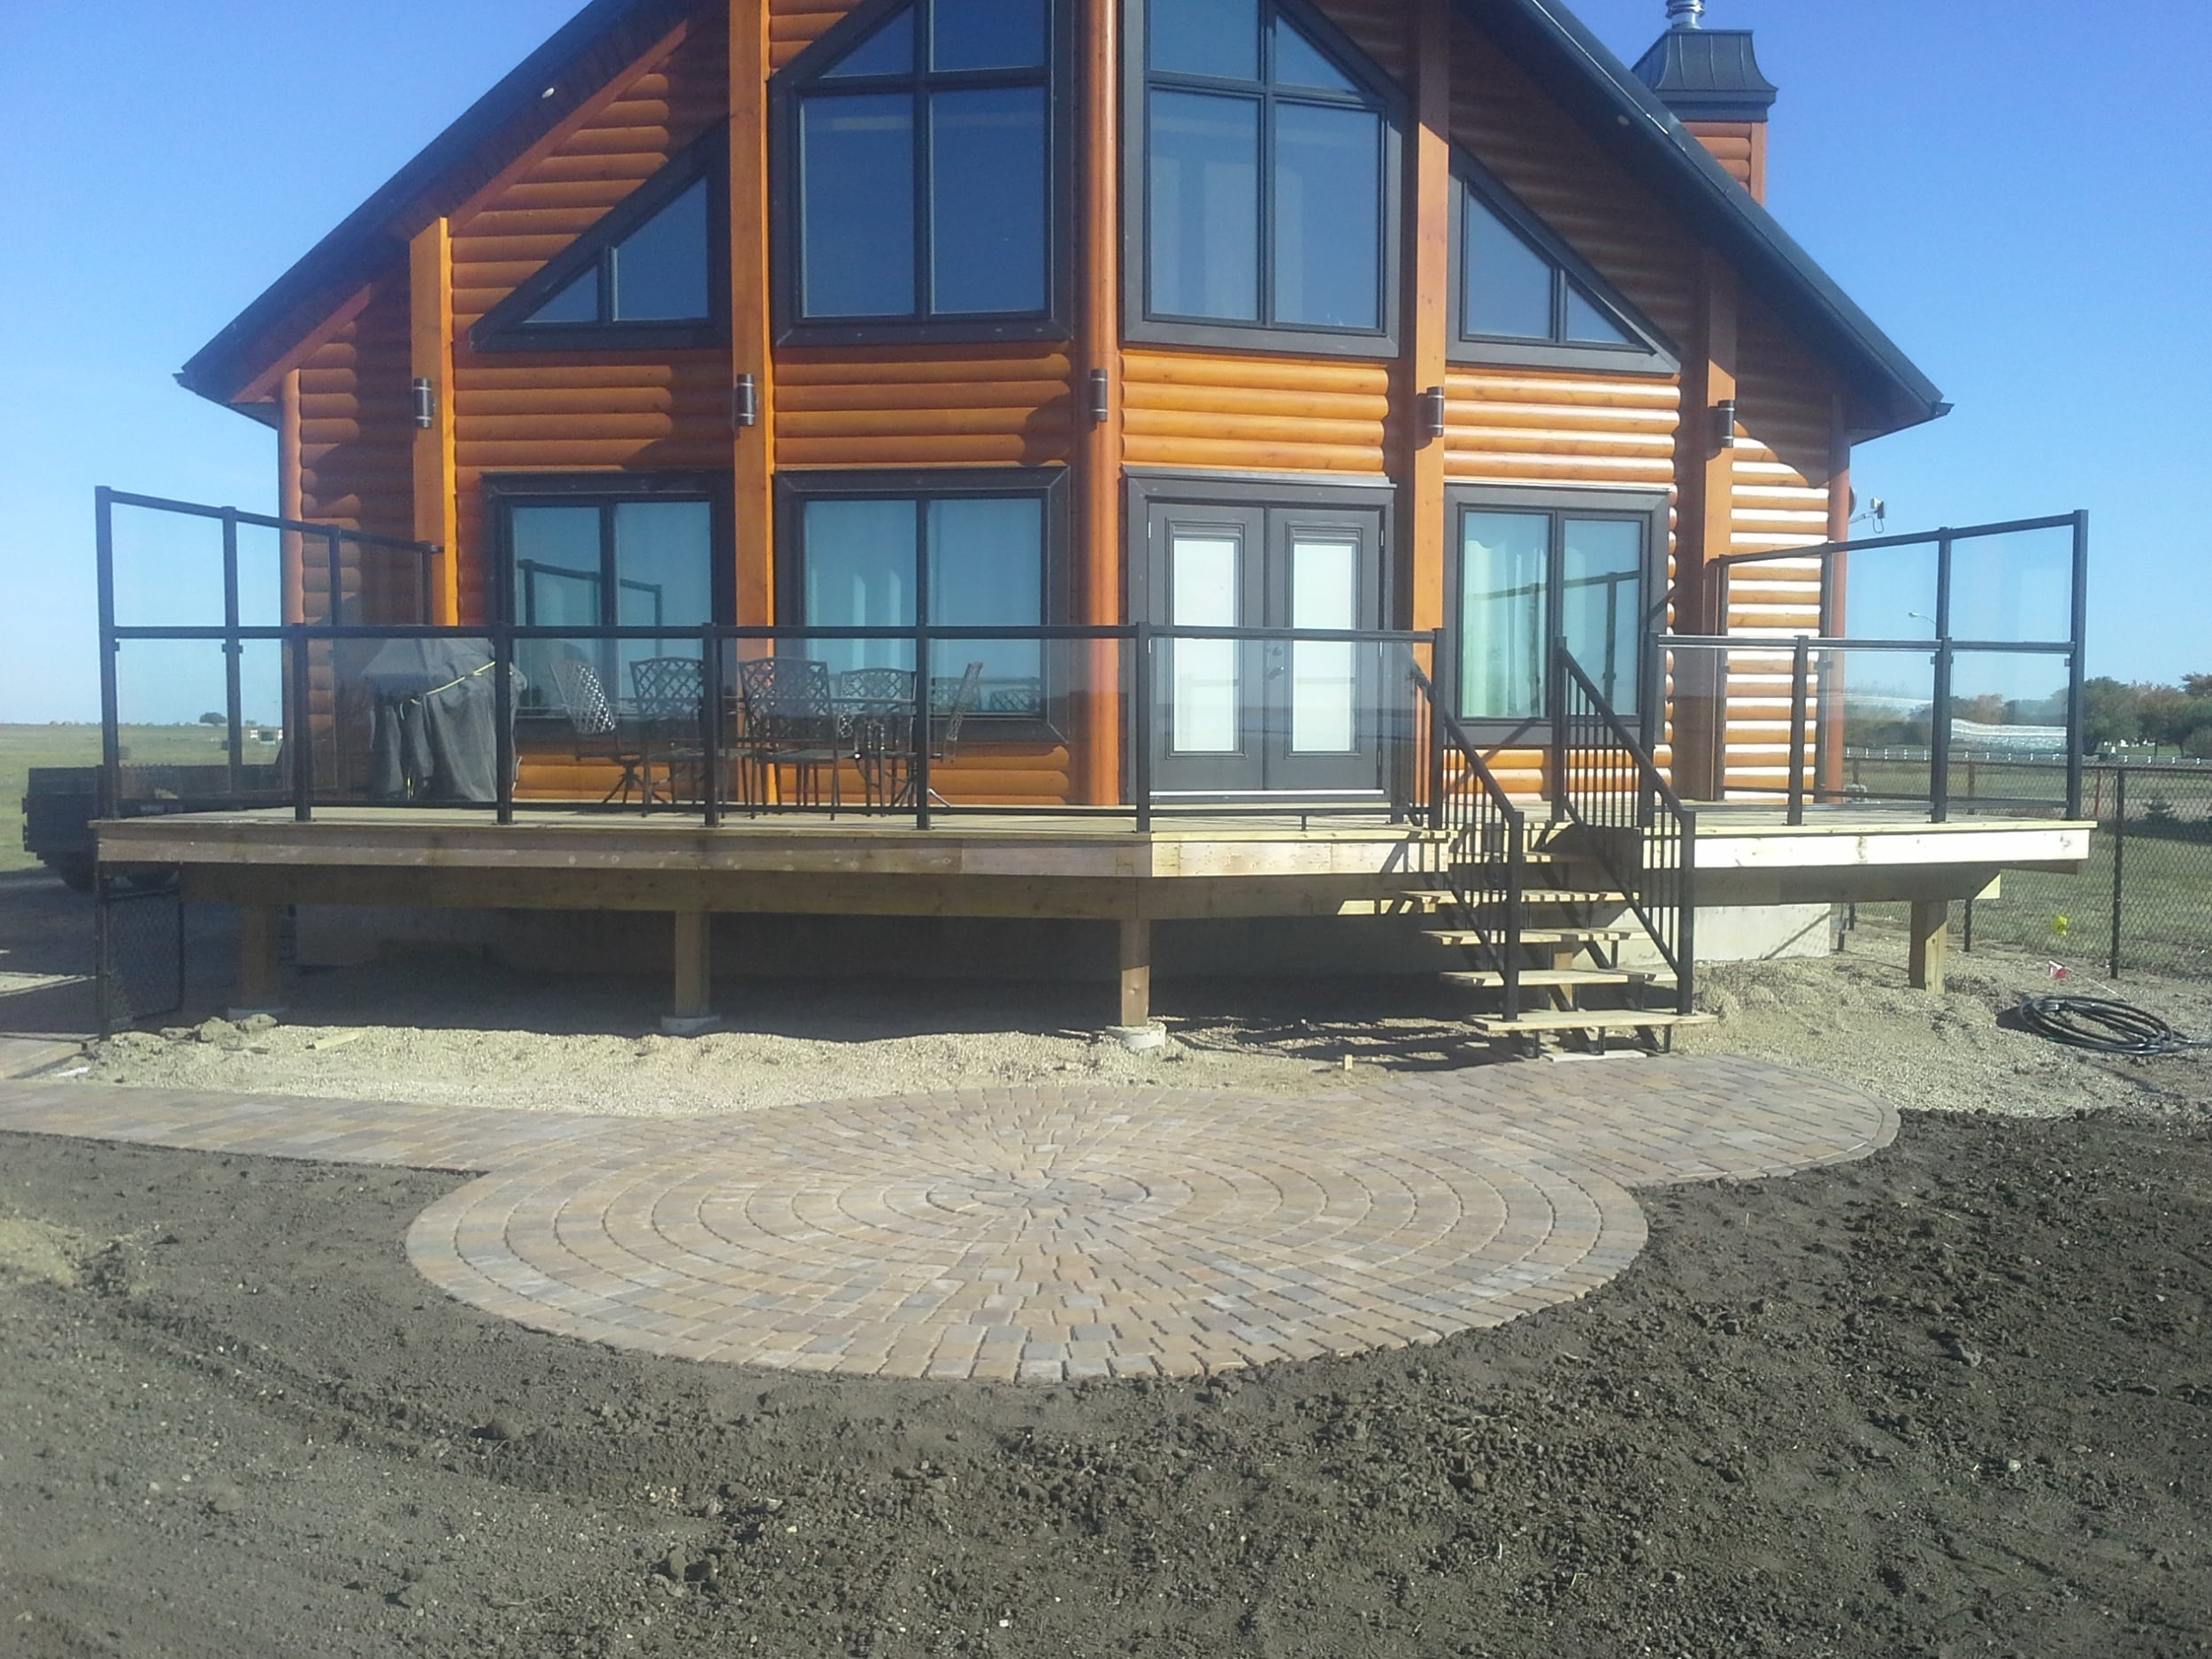 Paving Stone Fire Pit and Walk